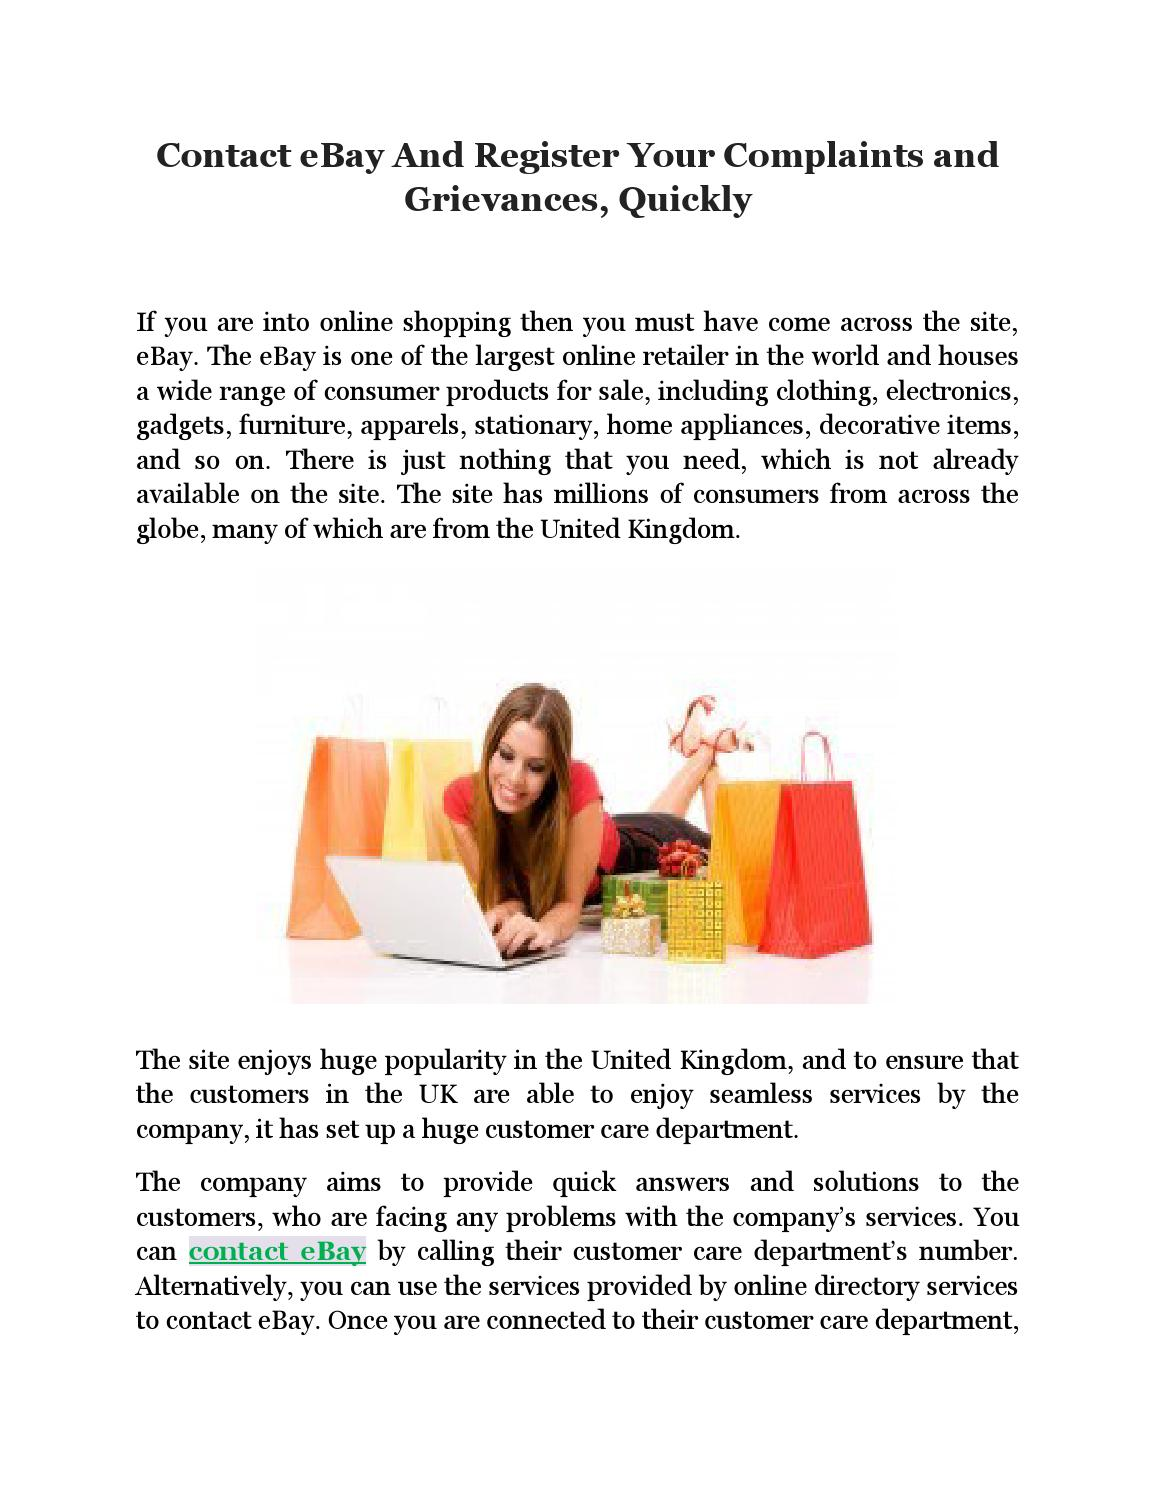 Contact Ebay And Register Your Complaints And Grievances Quickly By Rudolphsummers Issuu